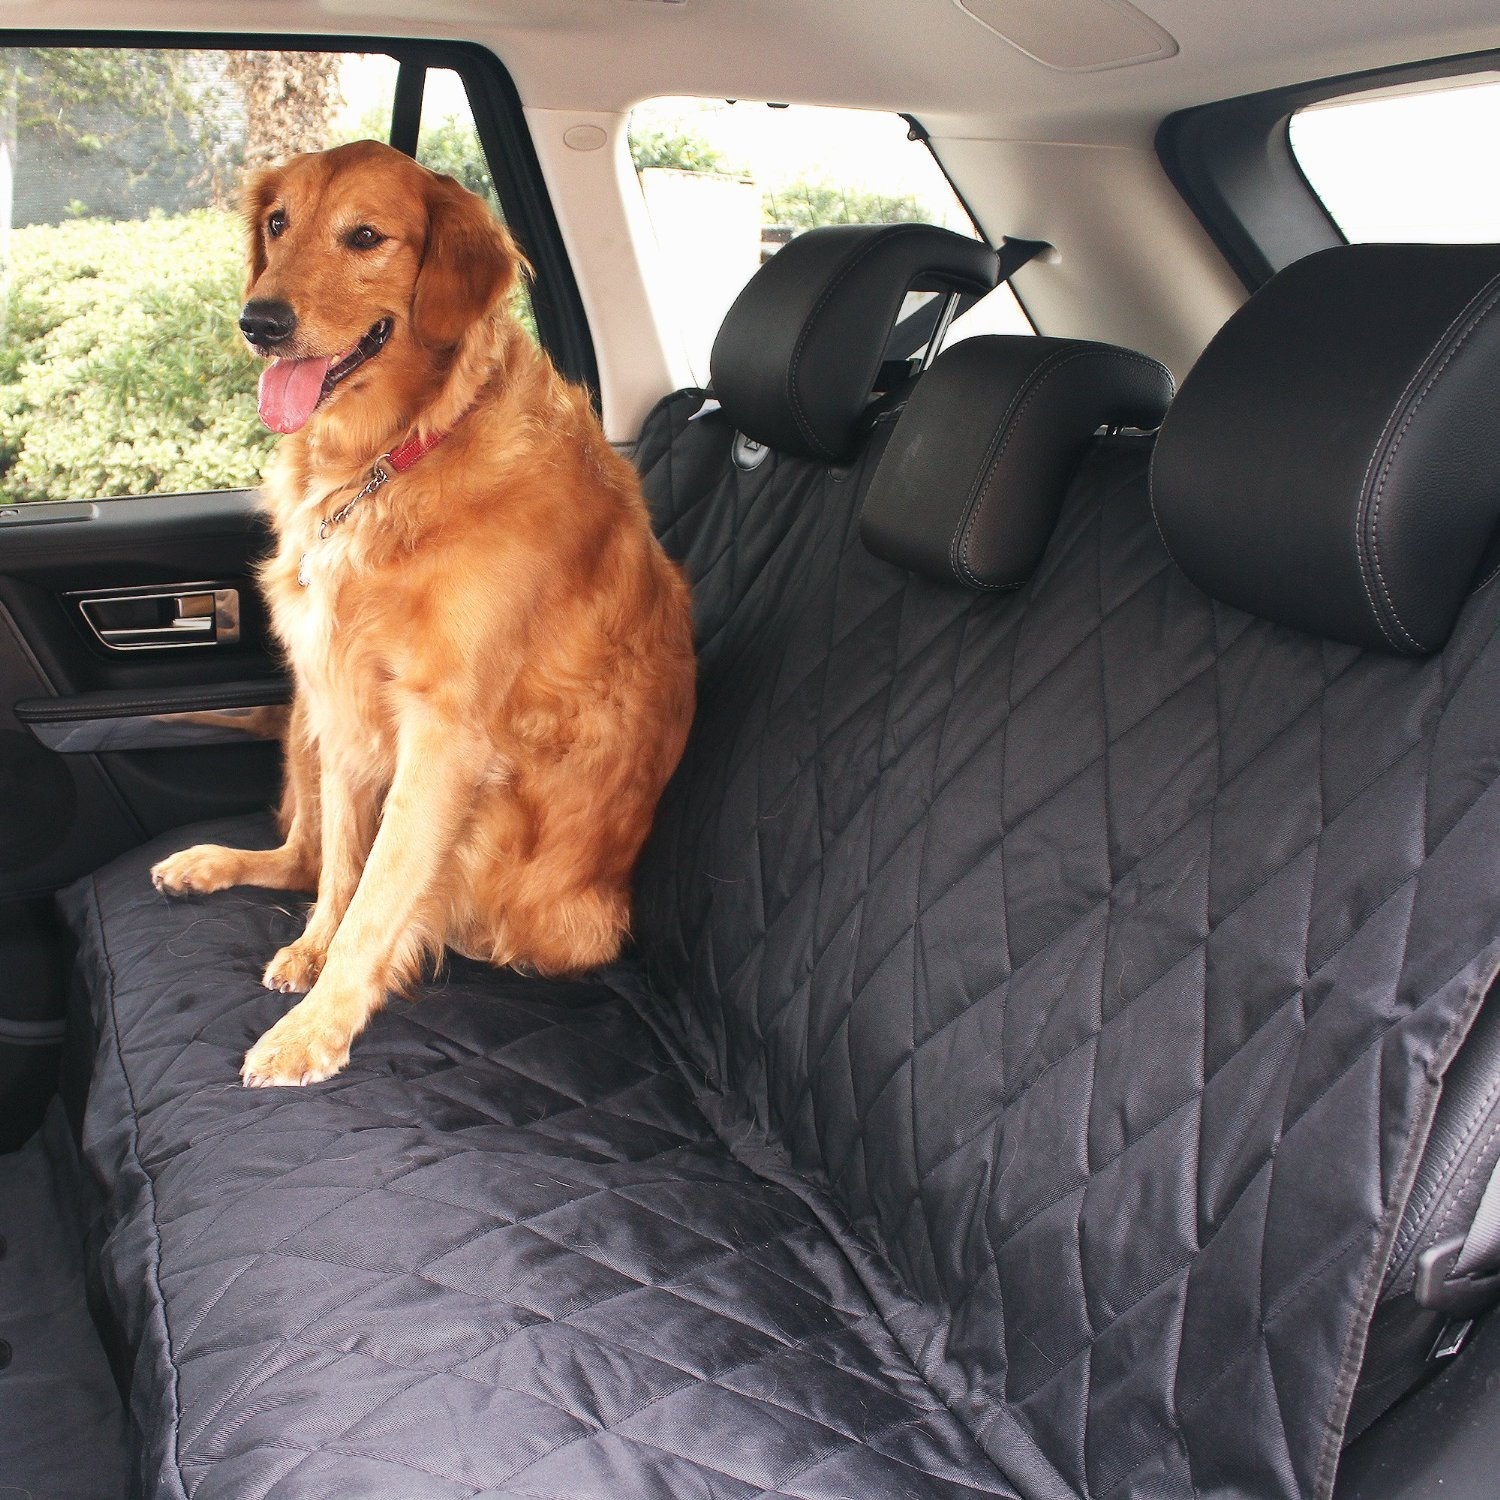 Pettom Dog Travel Hammock Pet Car Seat Covers Heavy Duty Durable Super Soft Waterproof Cover Rear Protector Fits Most Cars Trucks And